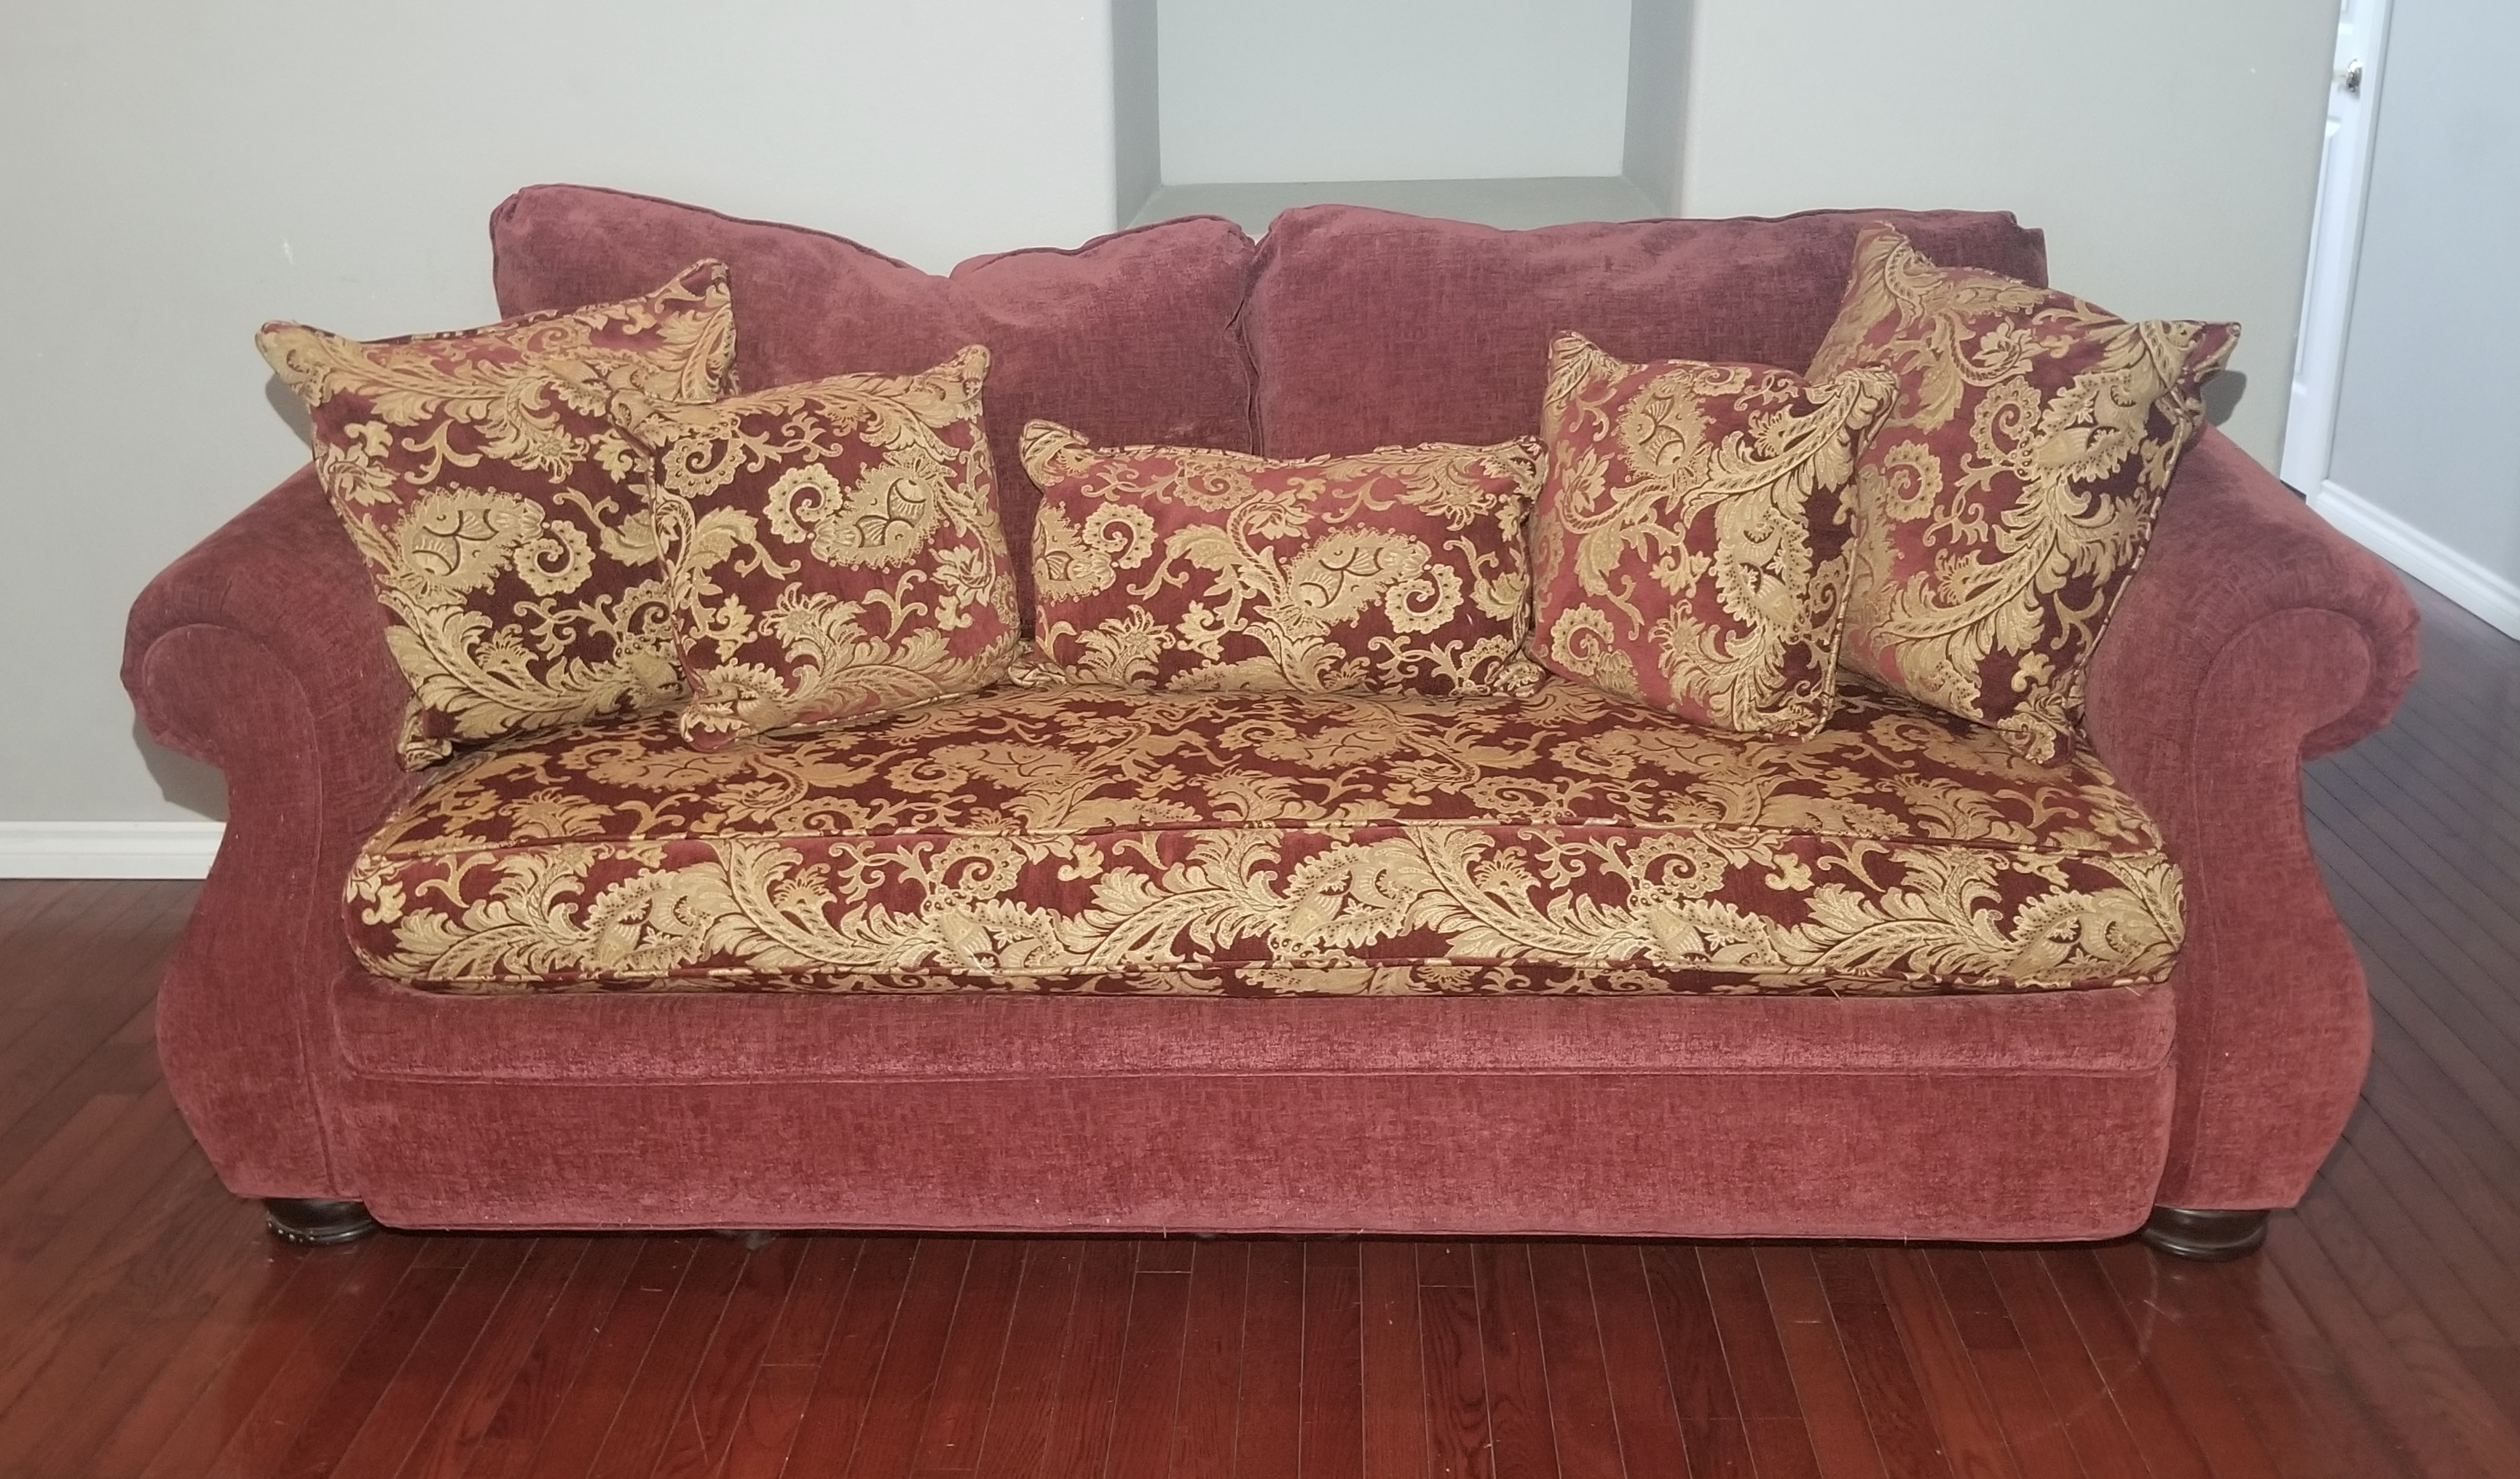 #SOF103 -- Robin Bruce Red/Gold Corduroy 3-Seat Bench Style Couch w/ 5 Throw